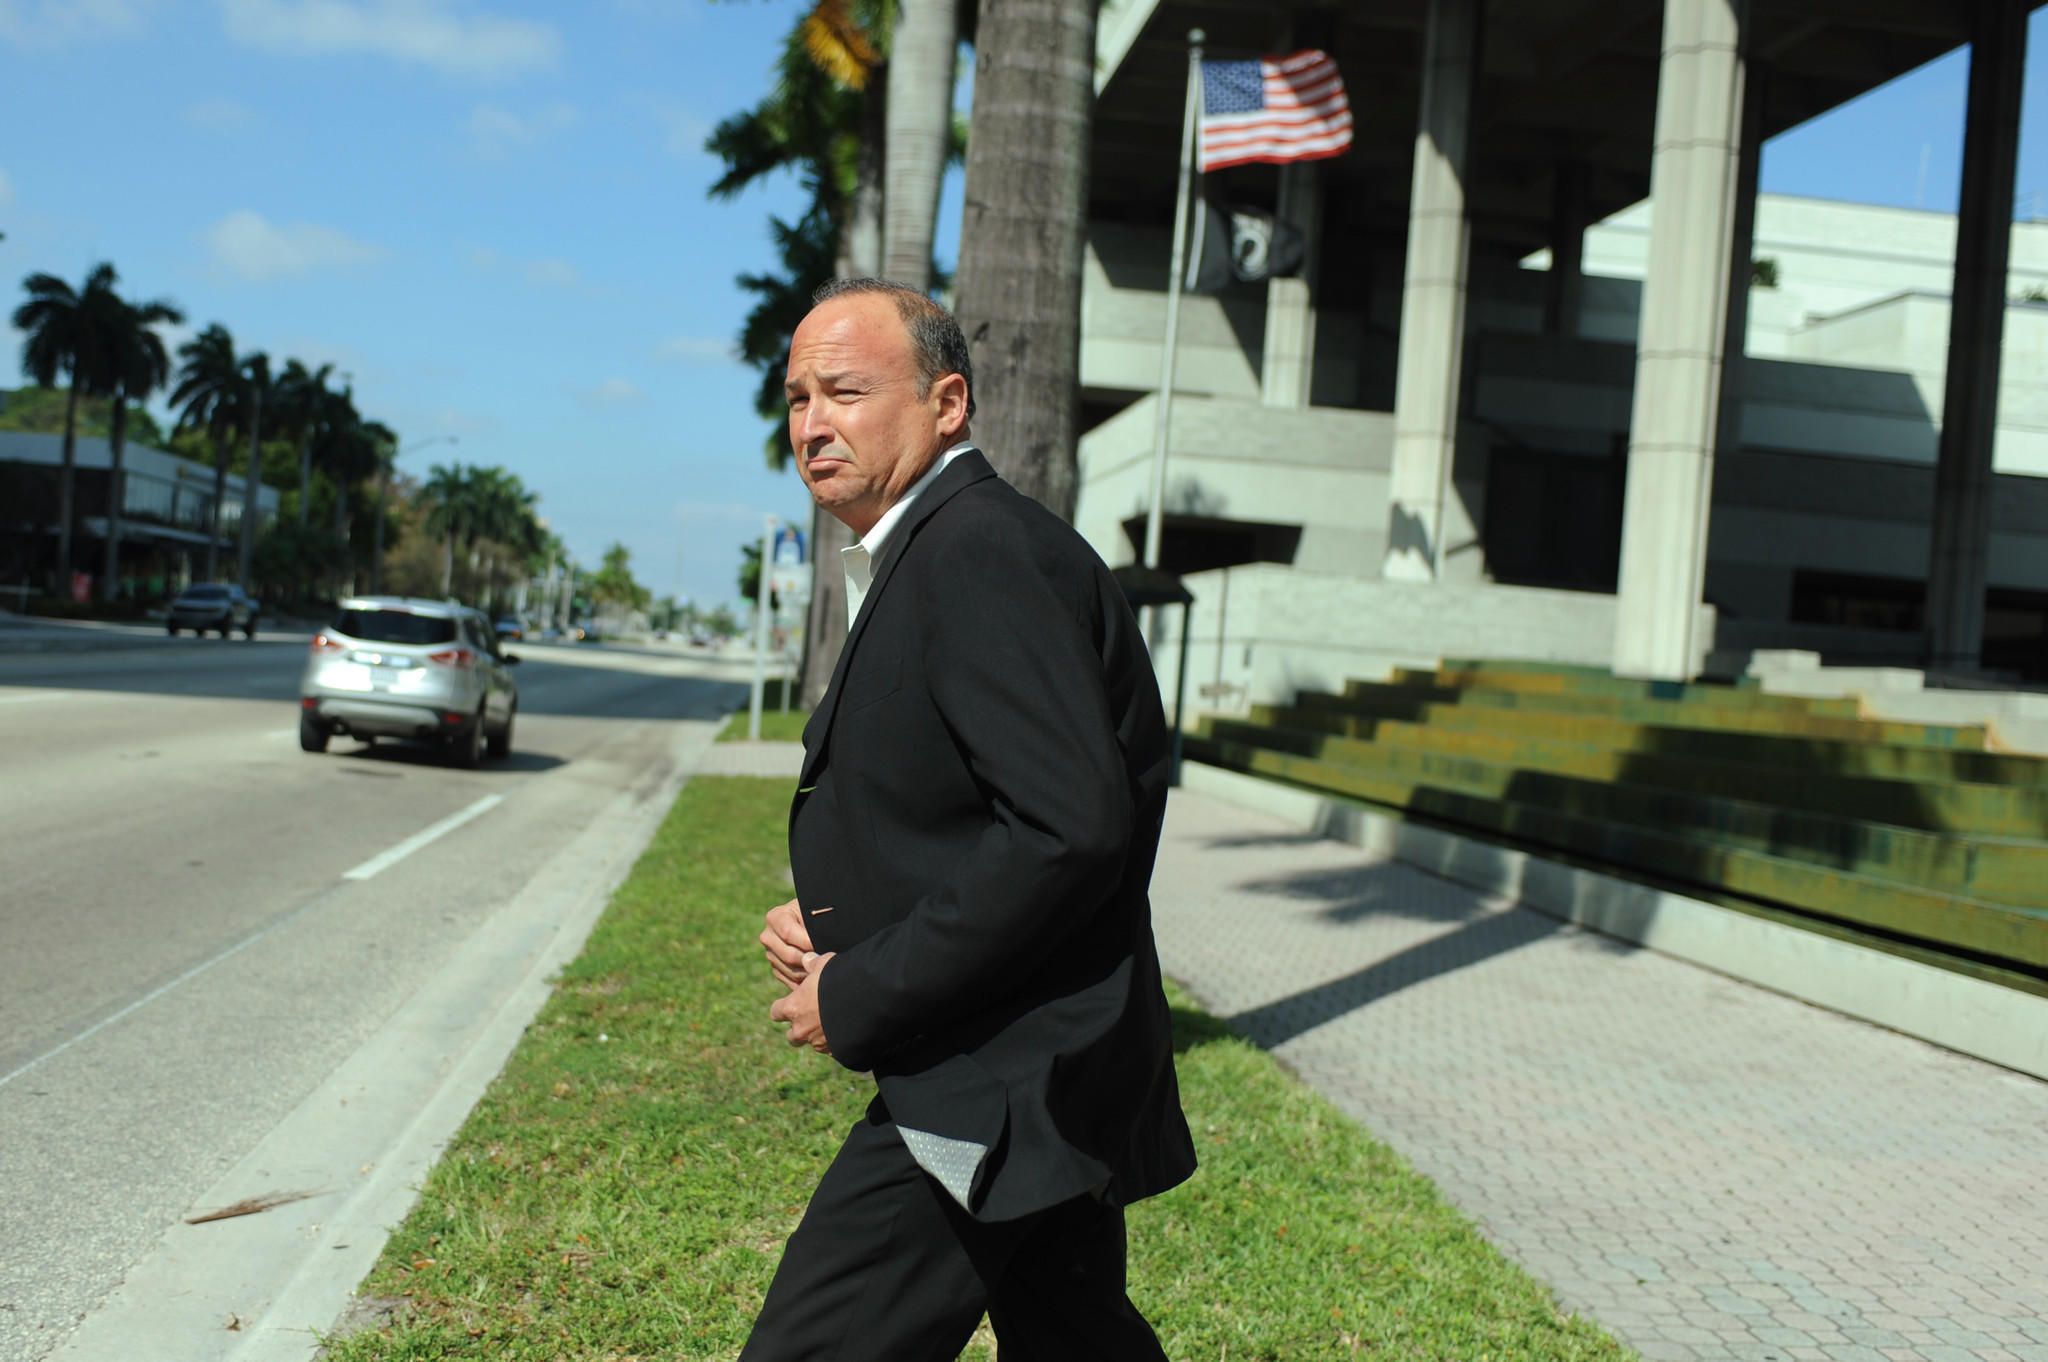 Russell Adler, a former law partner of Scott Rothstein, has been permanently disbarred from practicing law and faces up to five years in prison after pleading guilty to conspiring to funnel election campaign donations. Joe Cavaretta, SunSentinel (c) 2014